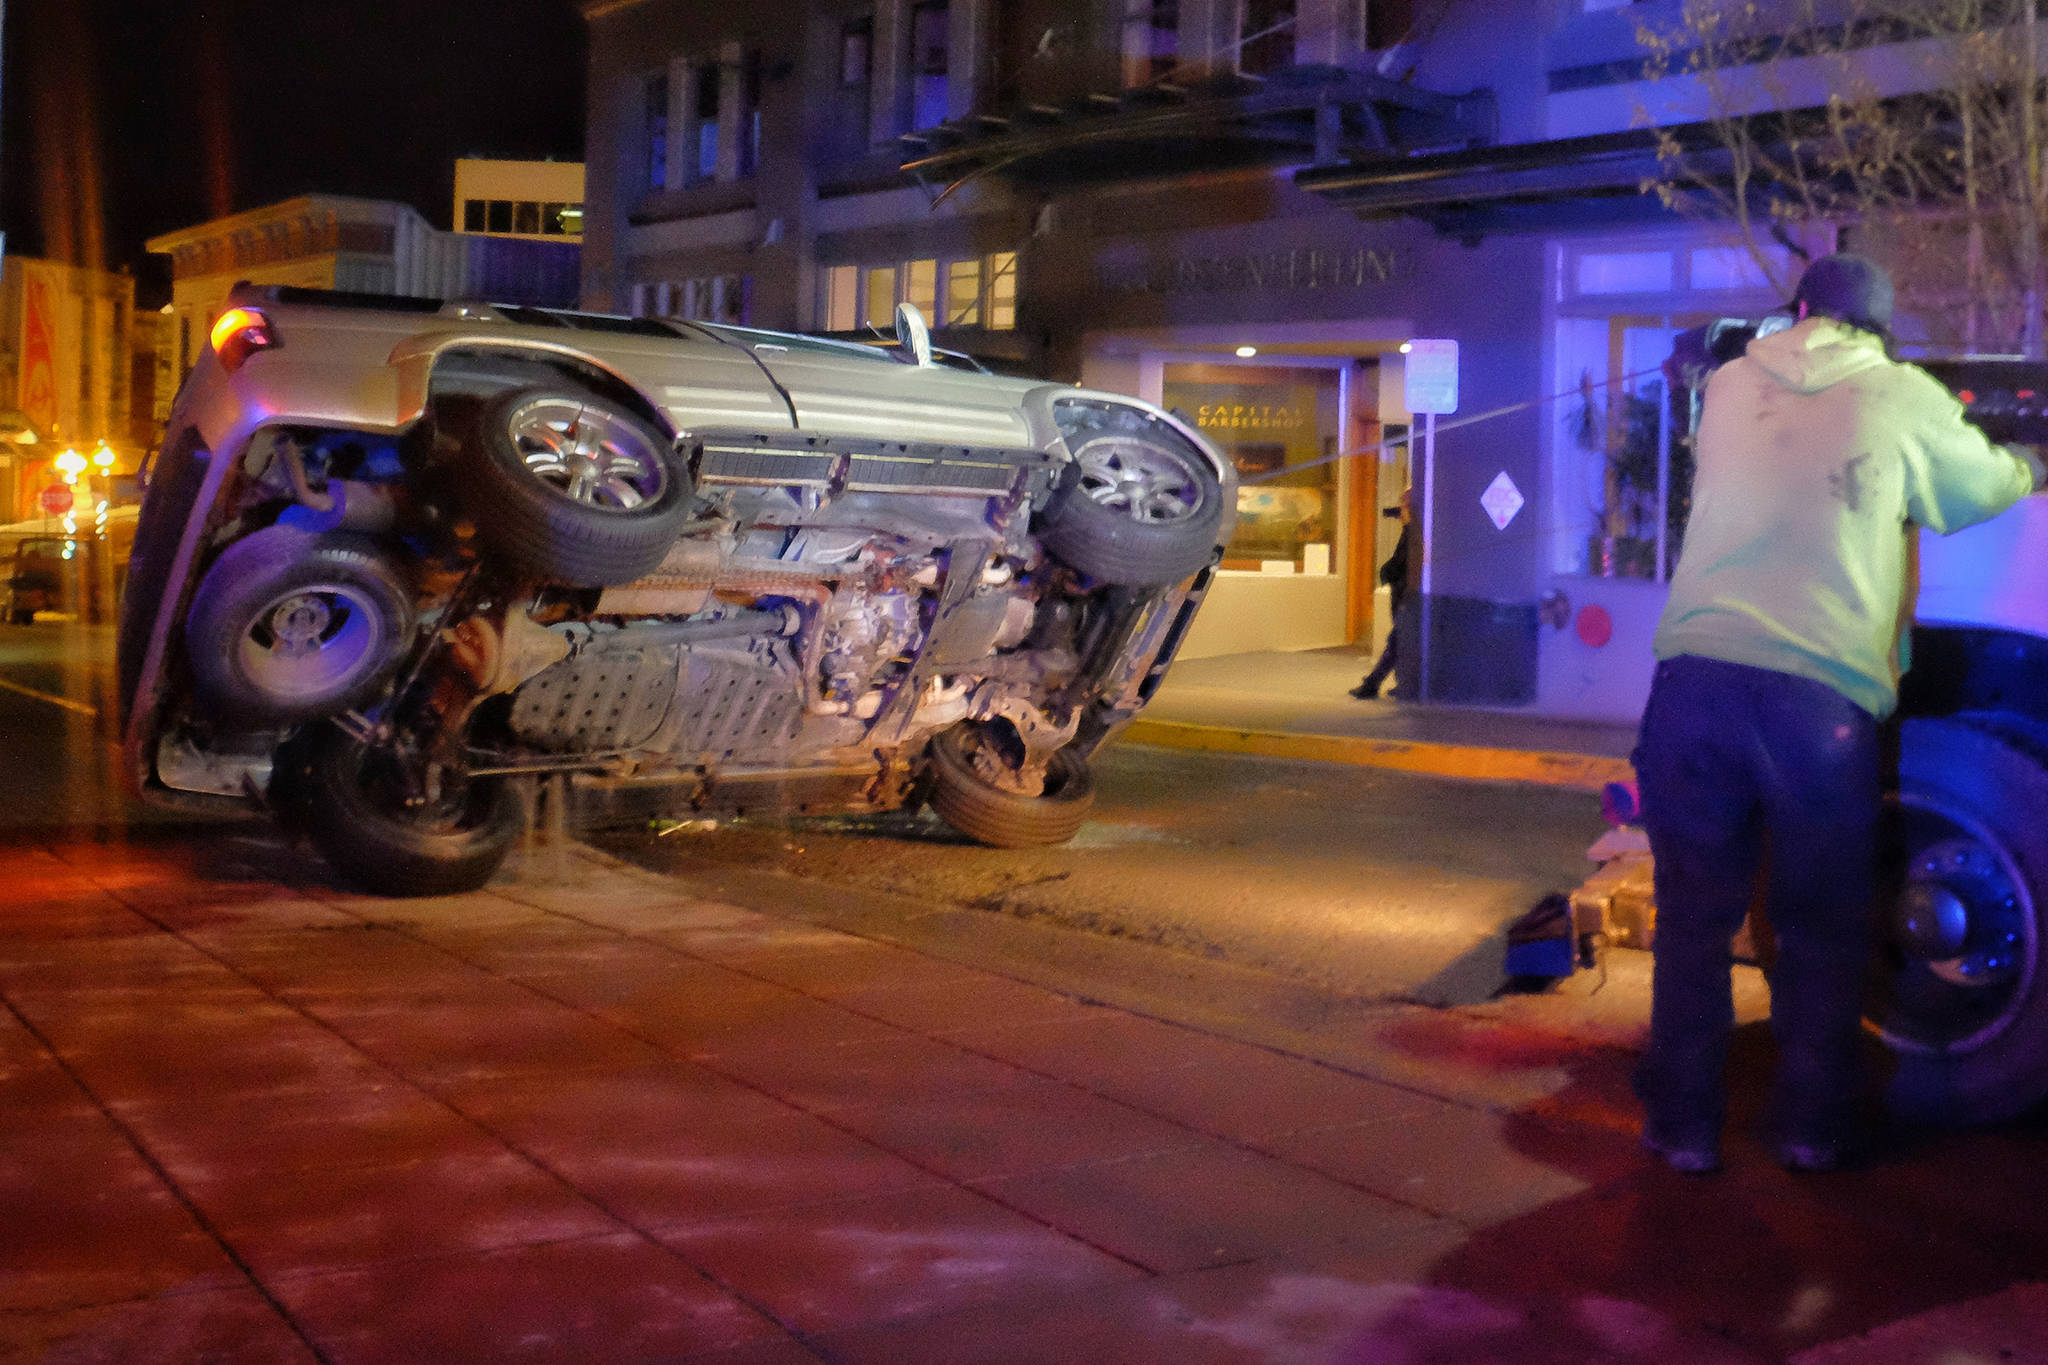 An SUV sits on its side after colliding with a concrete planter at the corner of Seward Street and Second Street on Thursday, Jan 18. The driver and sole passenger were taken to the hospital for injuries that were not life-threatening. (Courtesy photo | Jessie Herman-Haywood)